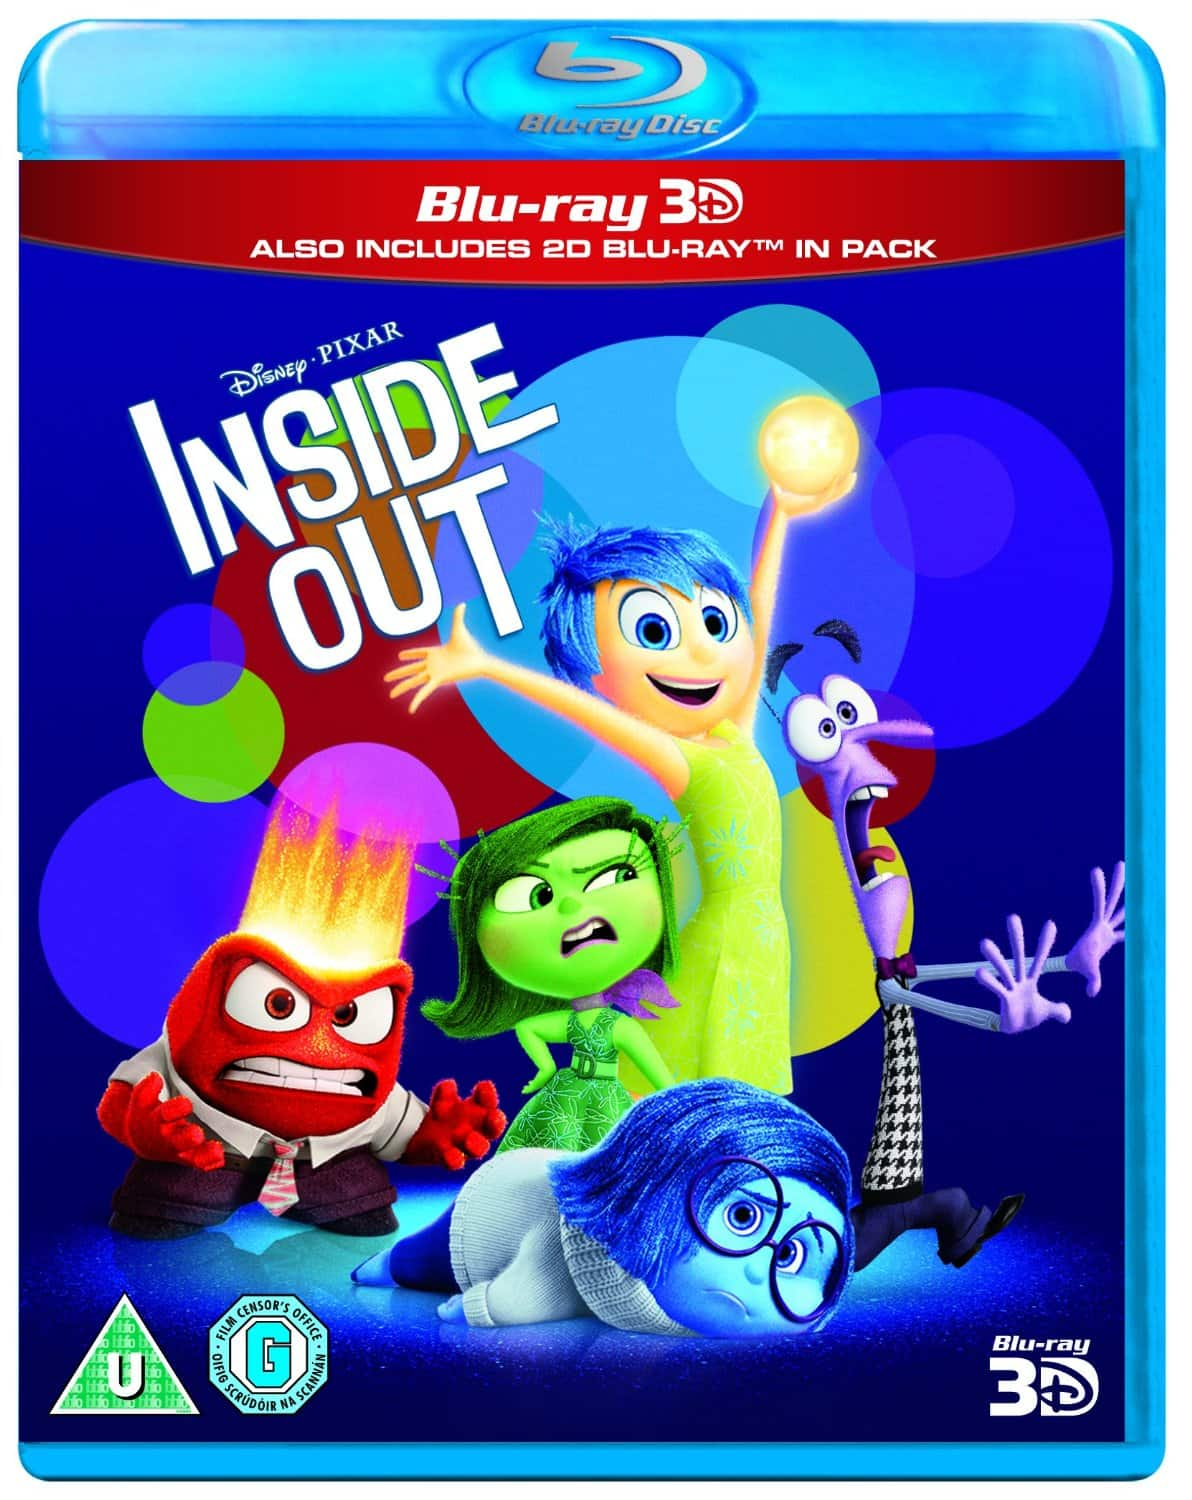 Region Free: 3D Disney Blu-ray Buy One Get One Free: Inside Out 3D + Big Hero 6 3D $25 Shipped & More